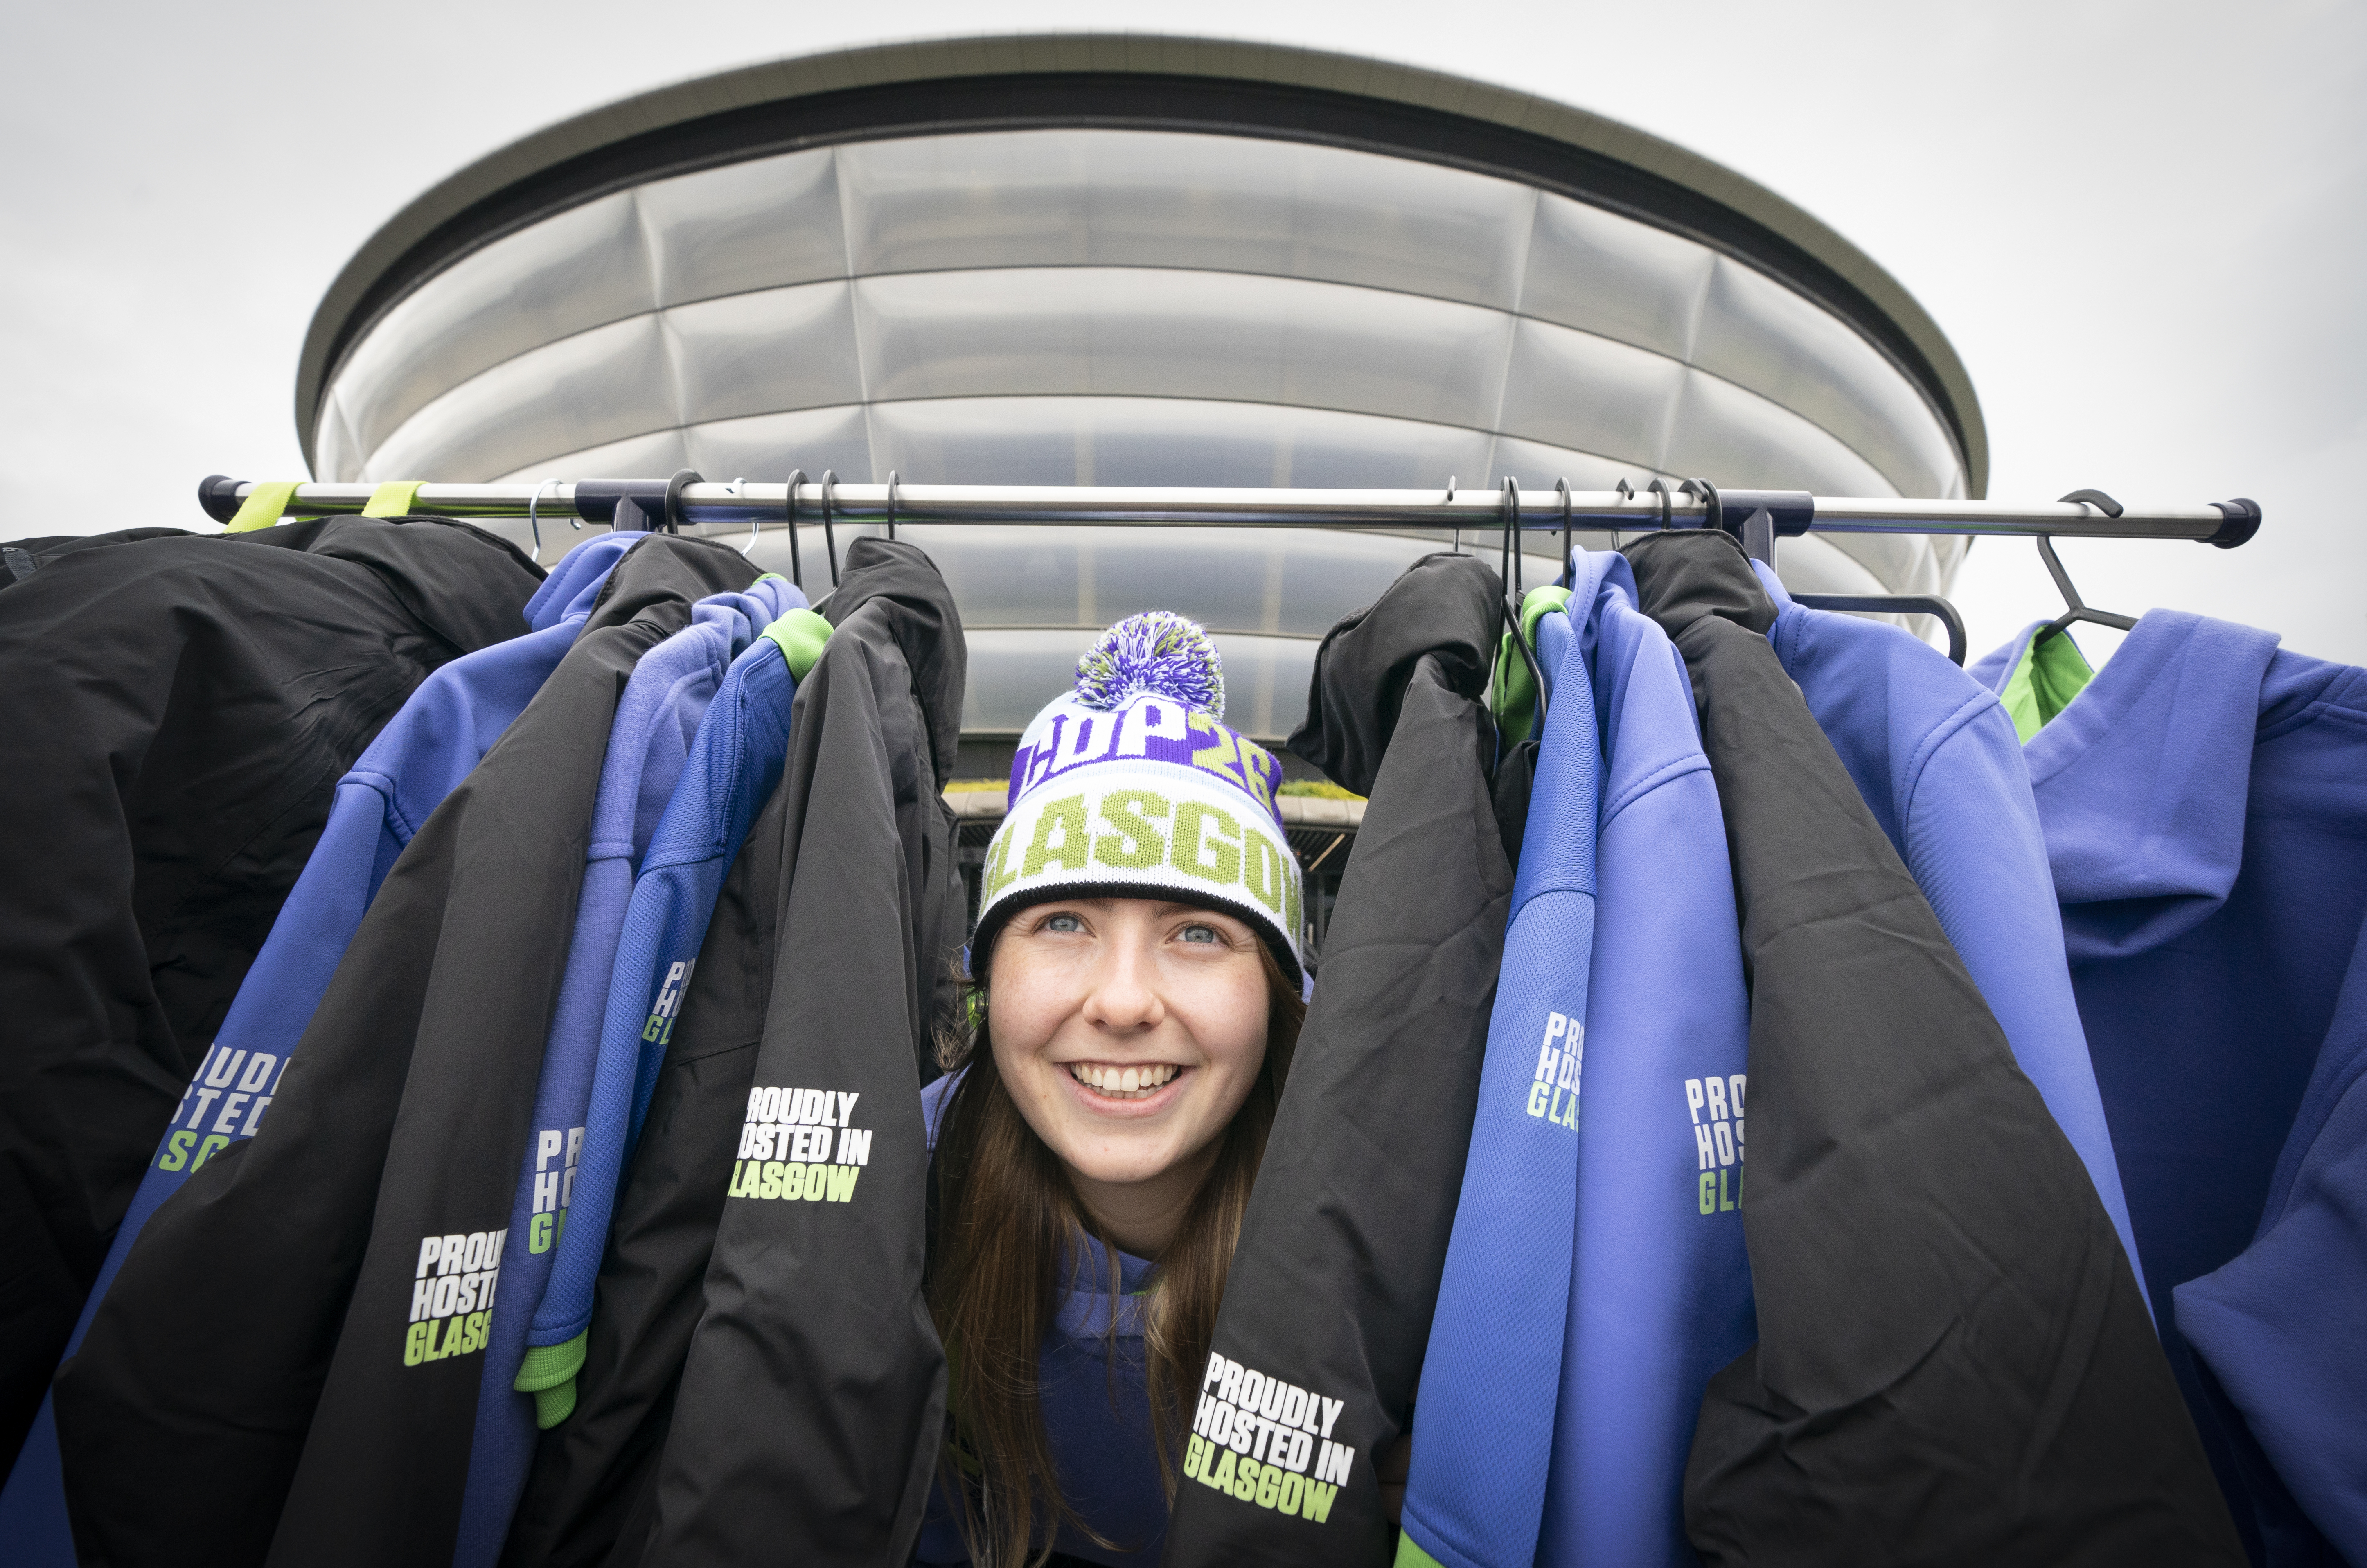 <p>Volunteer Leigh Baxter models the official uniform that will be worn by around 1,000 volunteers at the UN Climate Change Conference of the Parties (Cop26) are unveiled at The SSE Hydro, on the Scottish Event Campus in Glasgow. Picture date: Thursday September 30, 2021.</p>